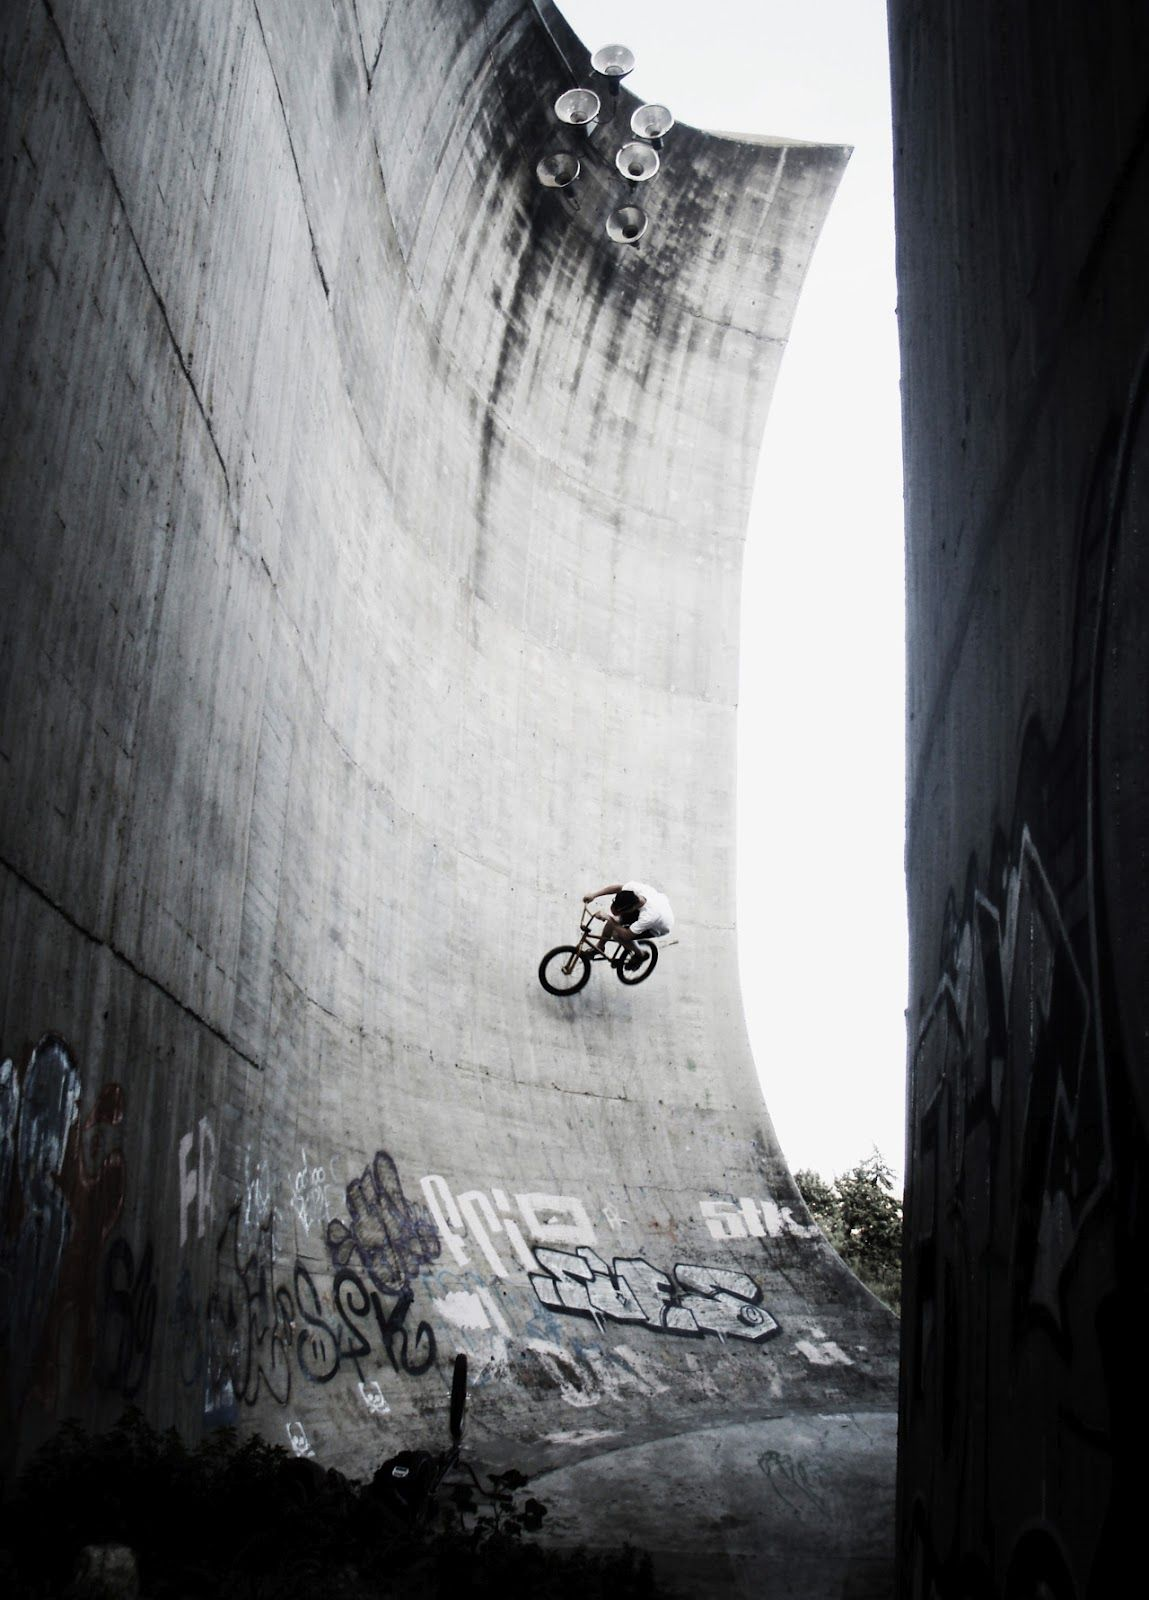 We enjoy all kinds of biking, as well as rad bike photography. This shot is freaking cool!